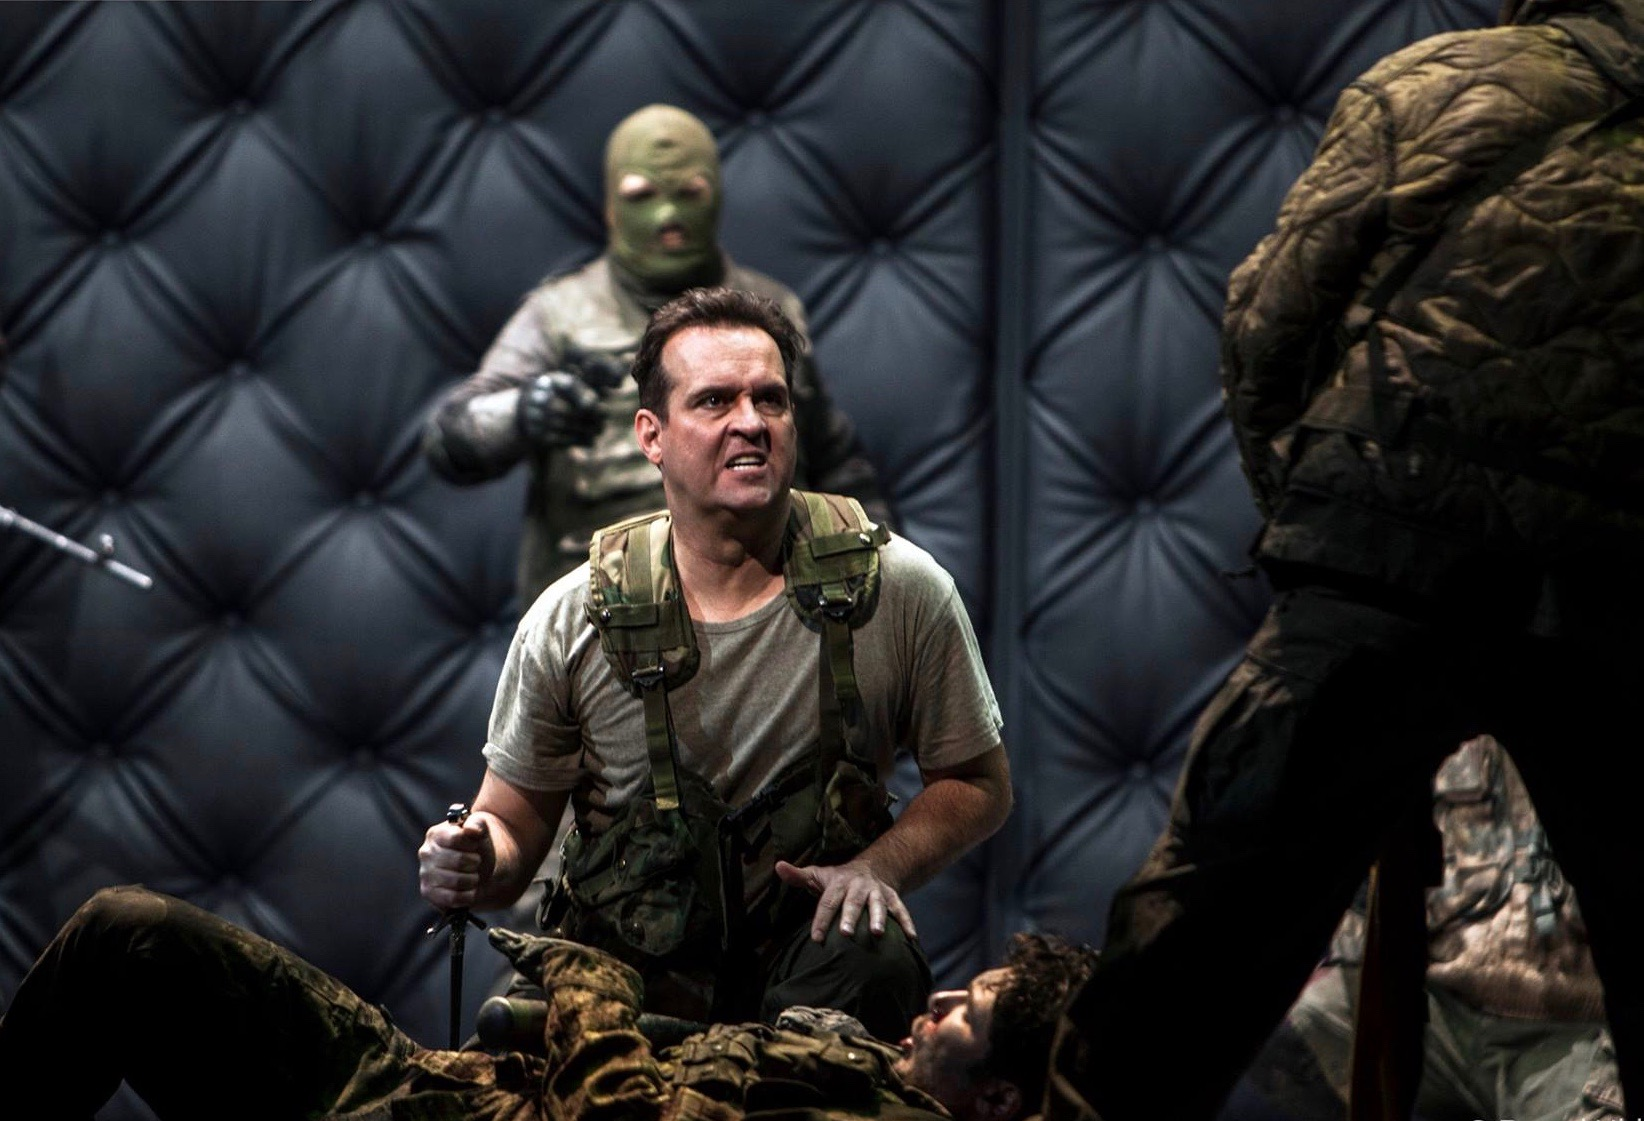 Macbeth  at Dutch National Opera. Photo by Bernd Uhlig.